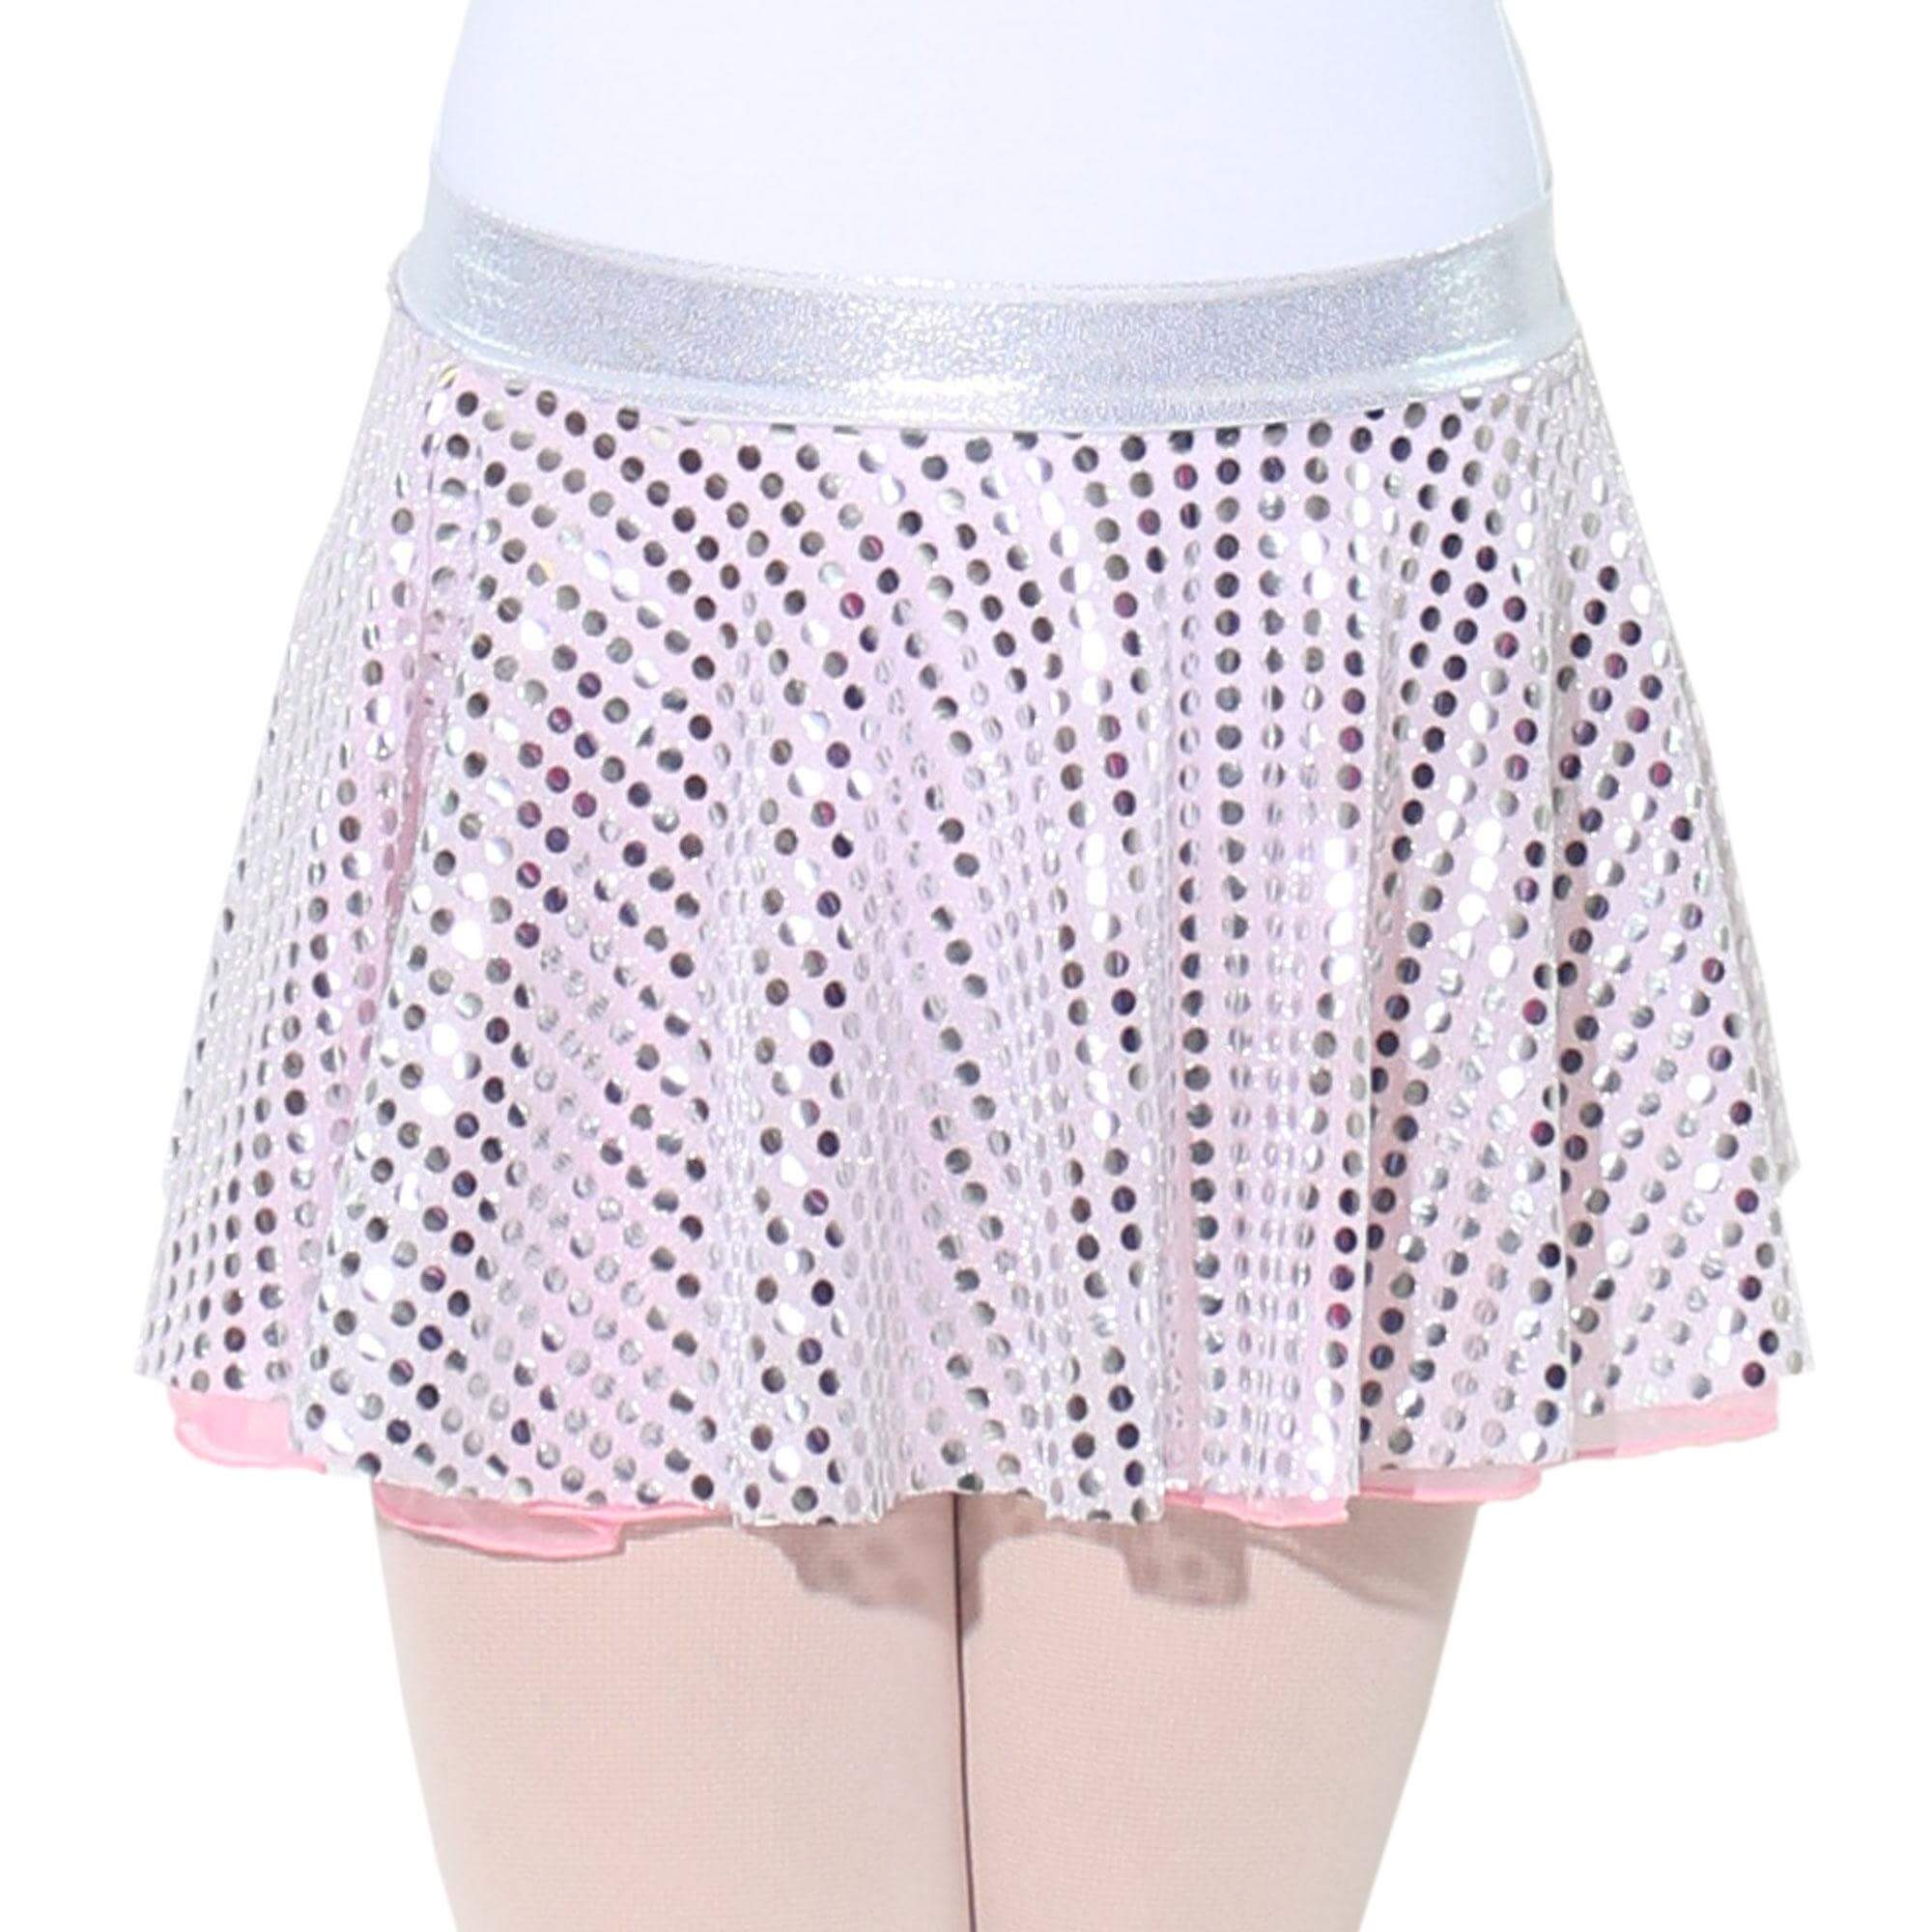 Reflectionz Metallic Skirt